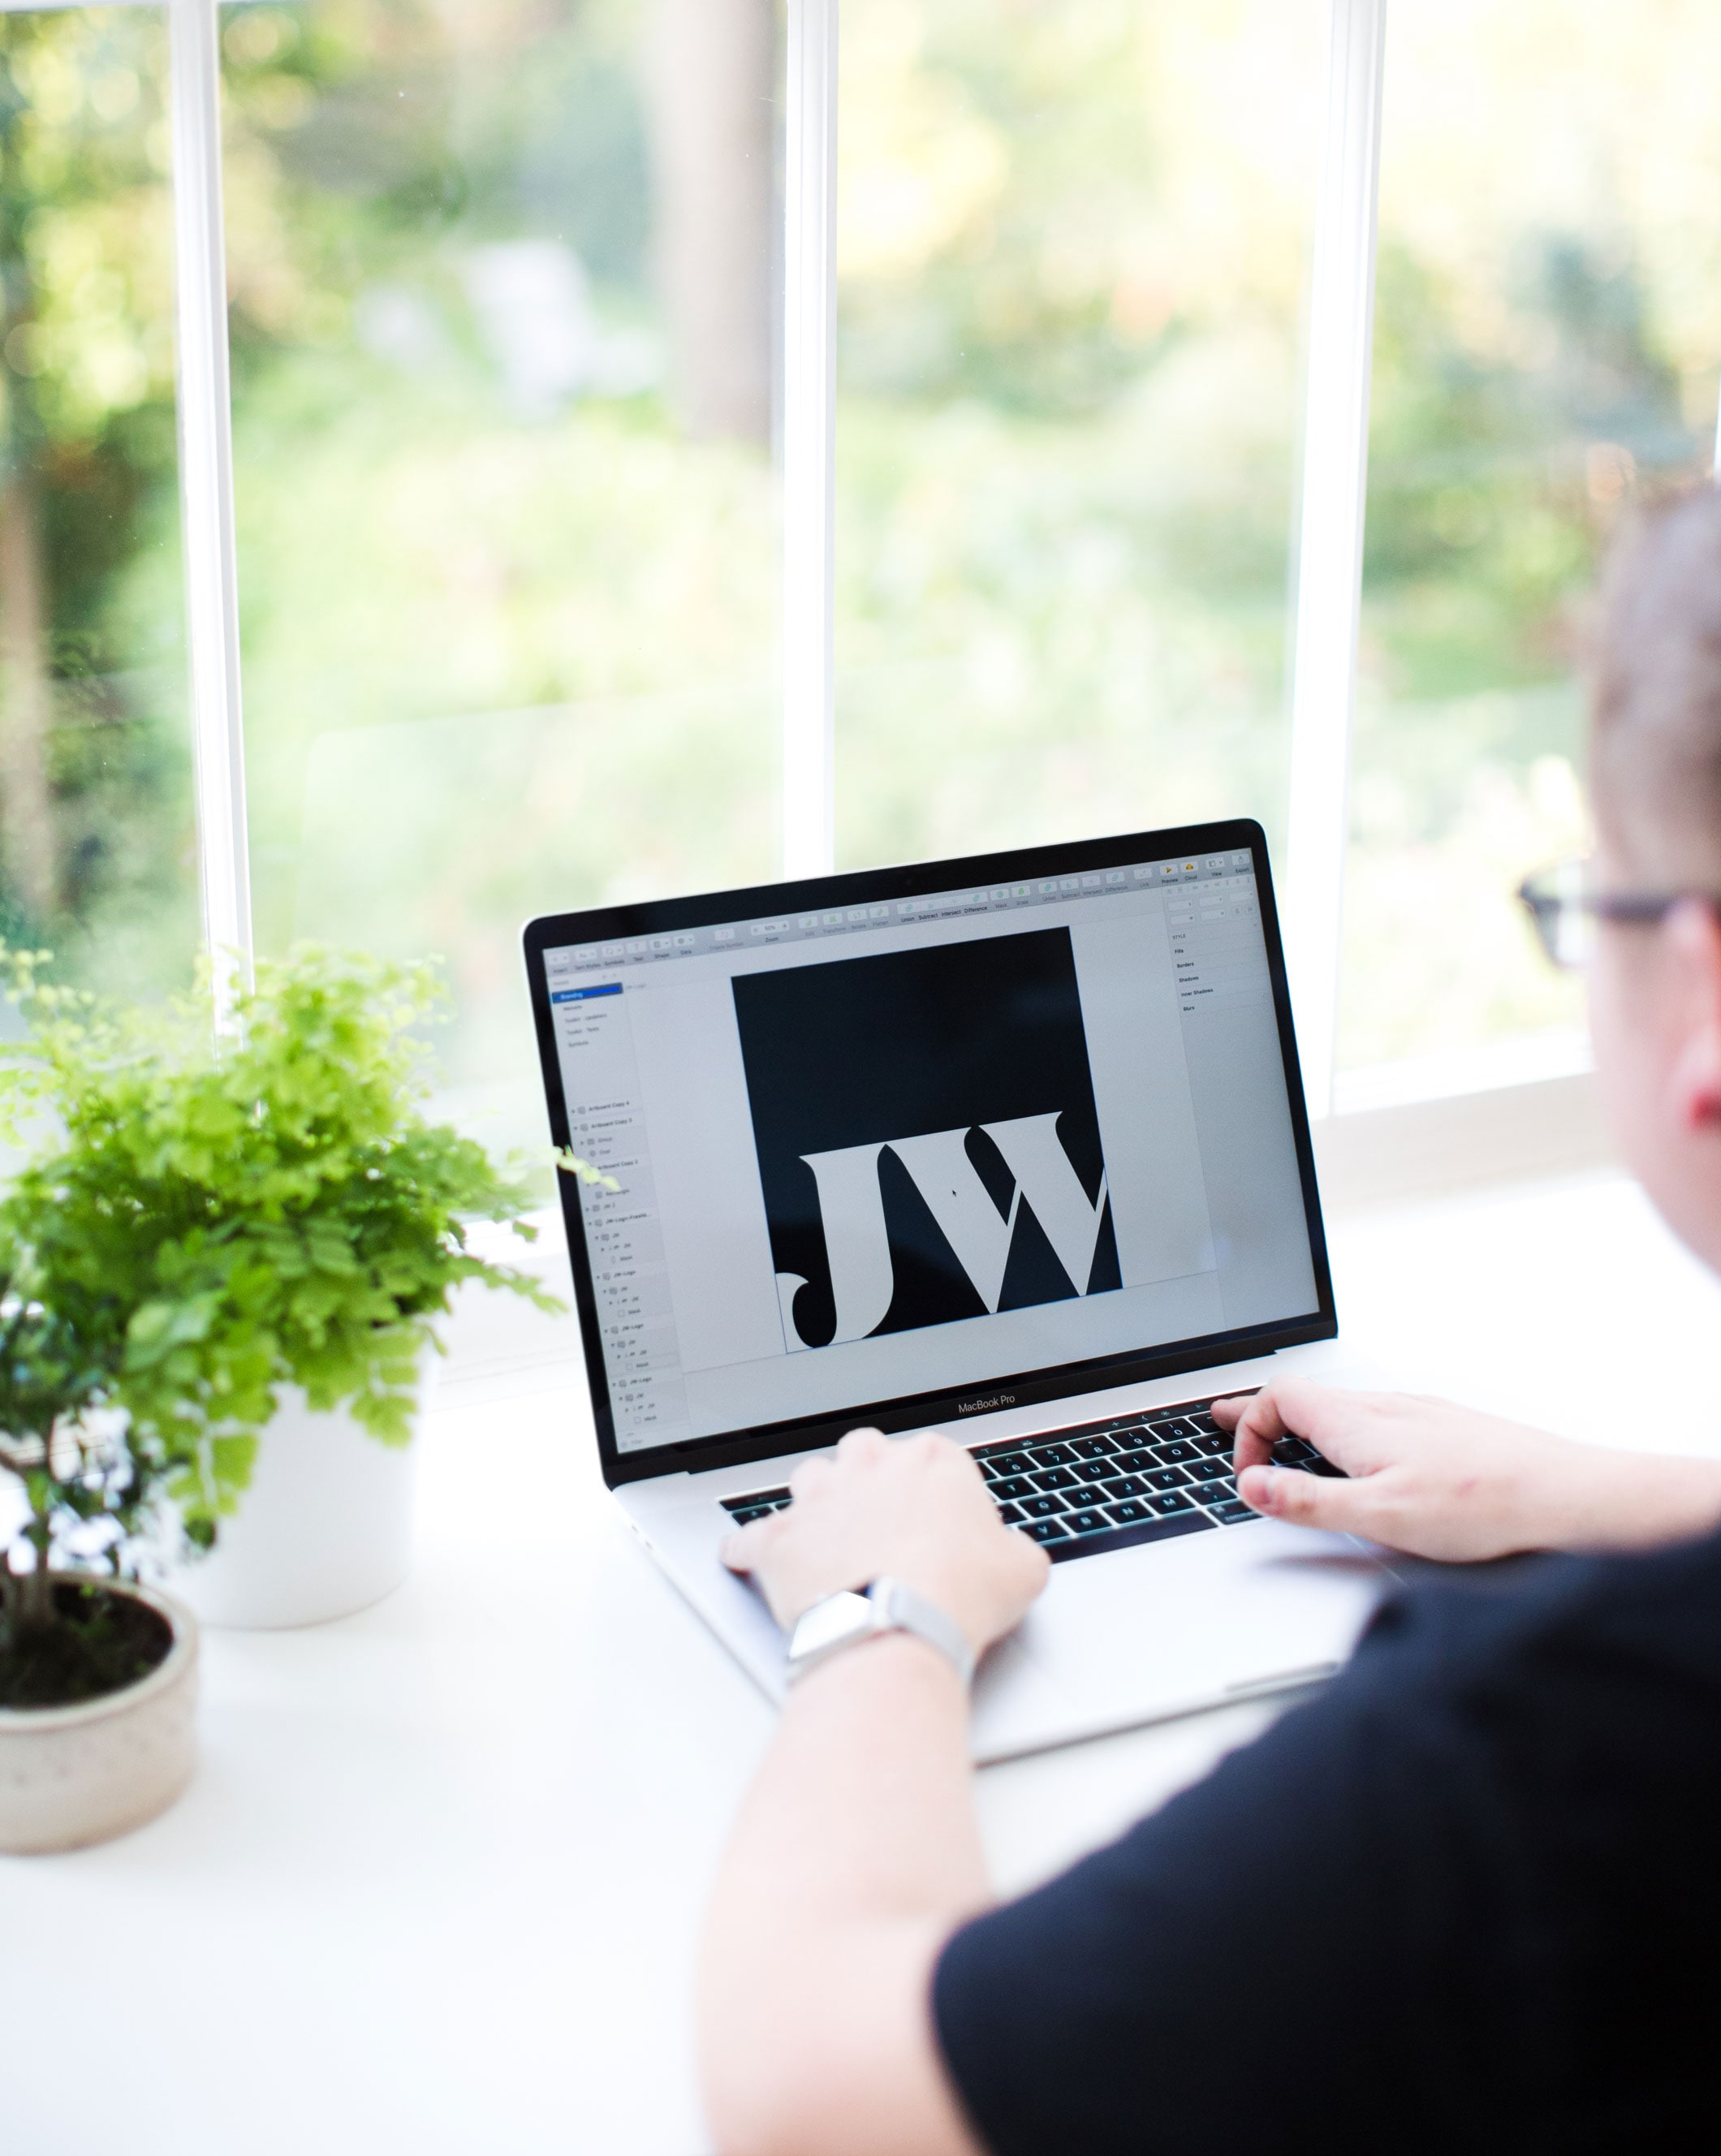 Jack Watkins working at his light filled desk and workspace